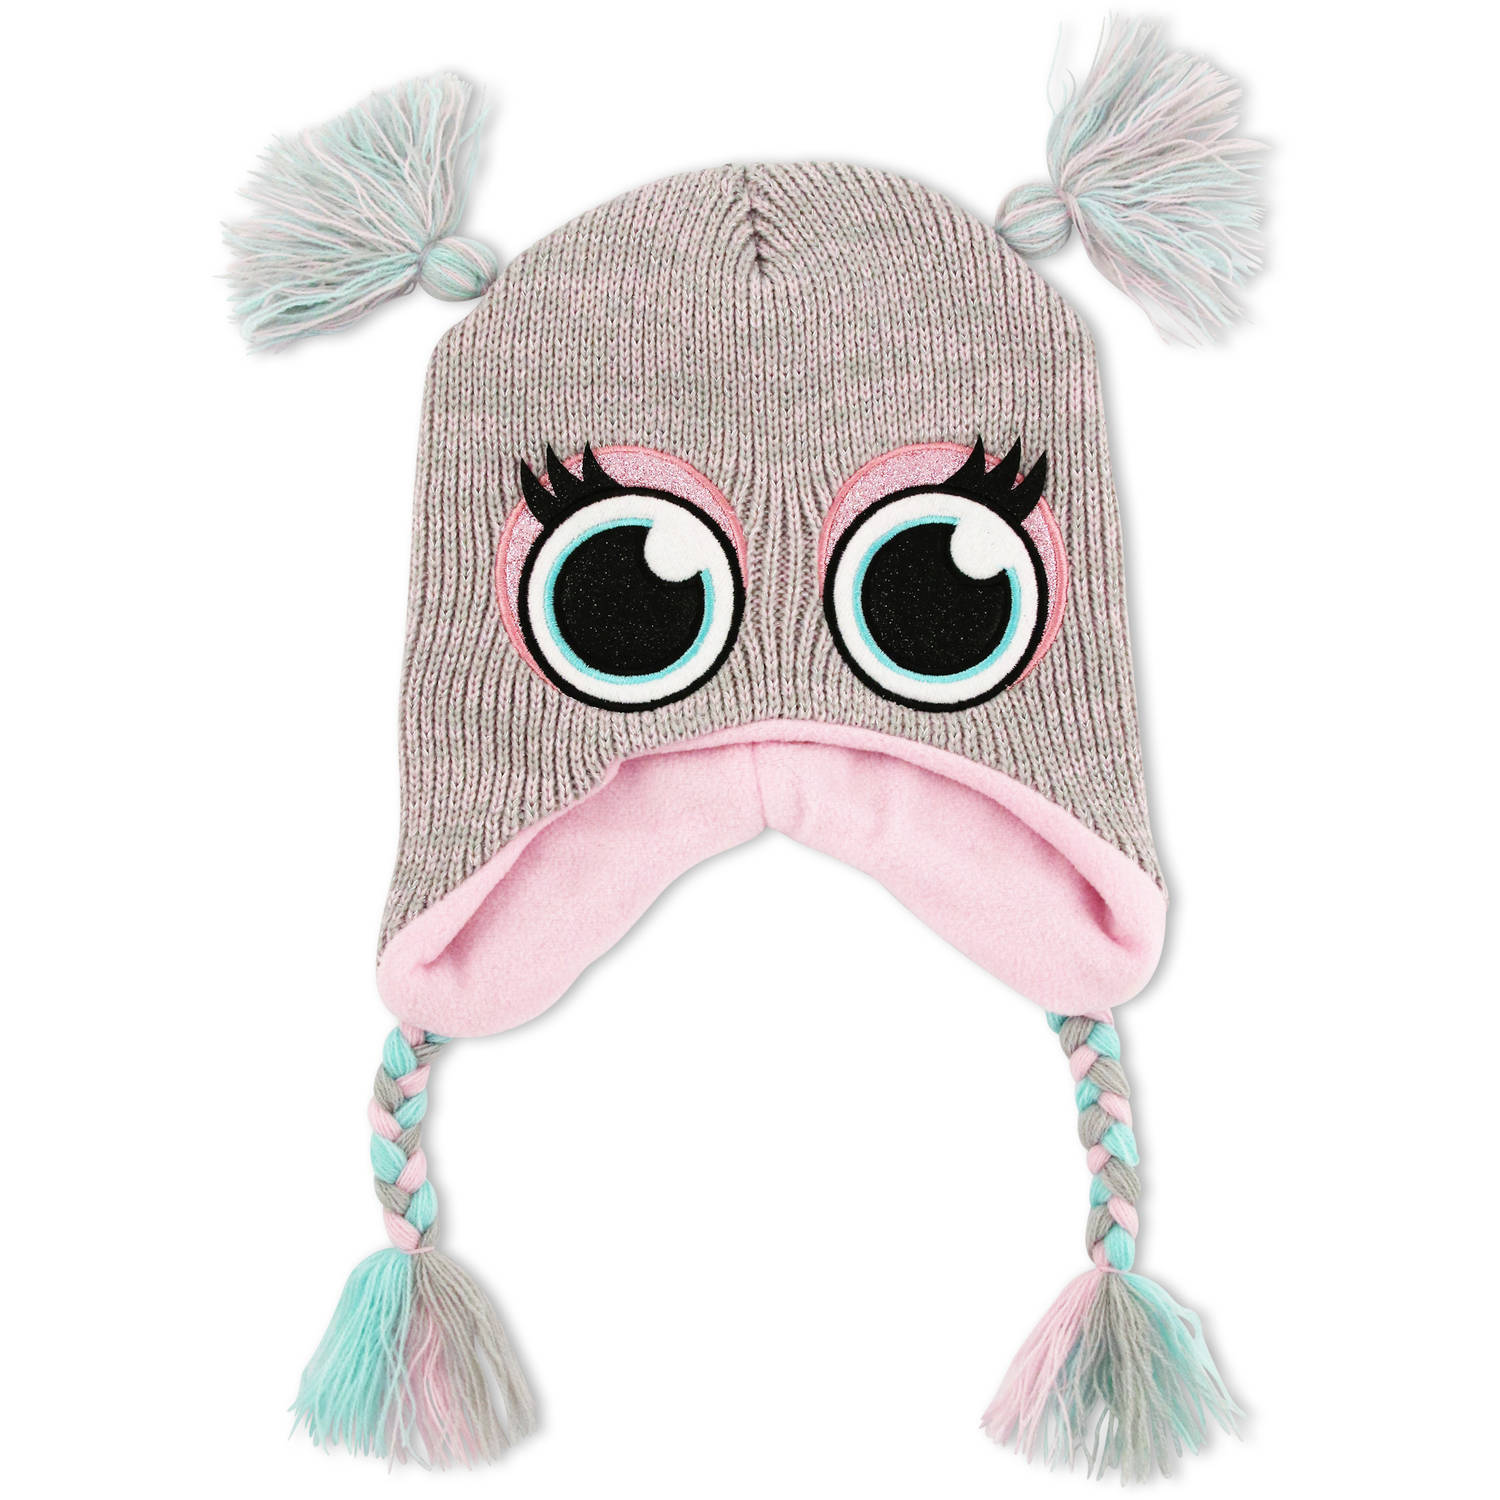 Image of ABG Silver Critter double pom Scandinavian knit hat with pom tassels.